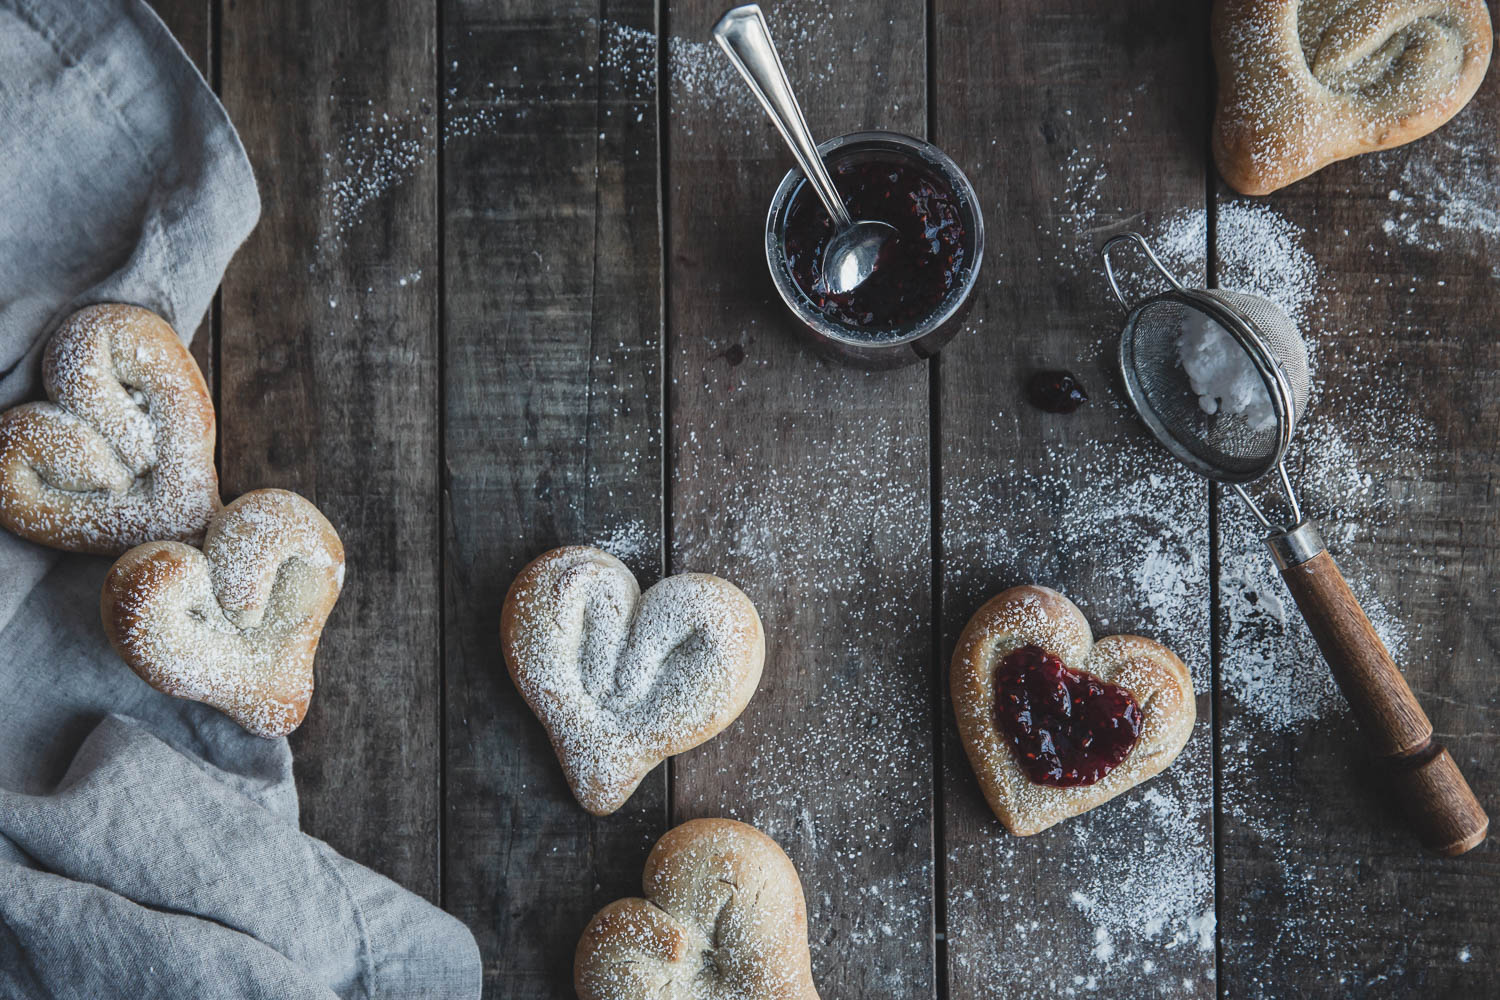 Heart-shaped Cardamom Buns served with raspberry preserves